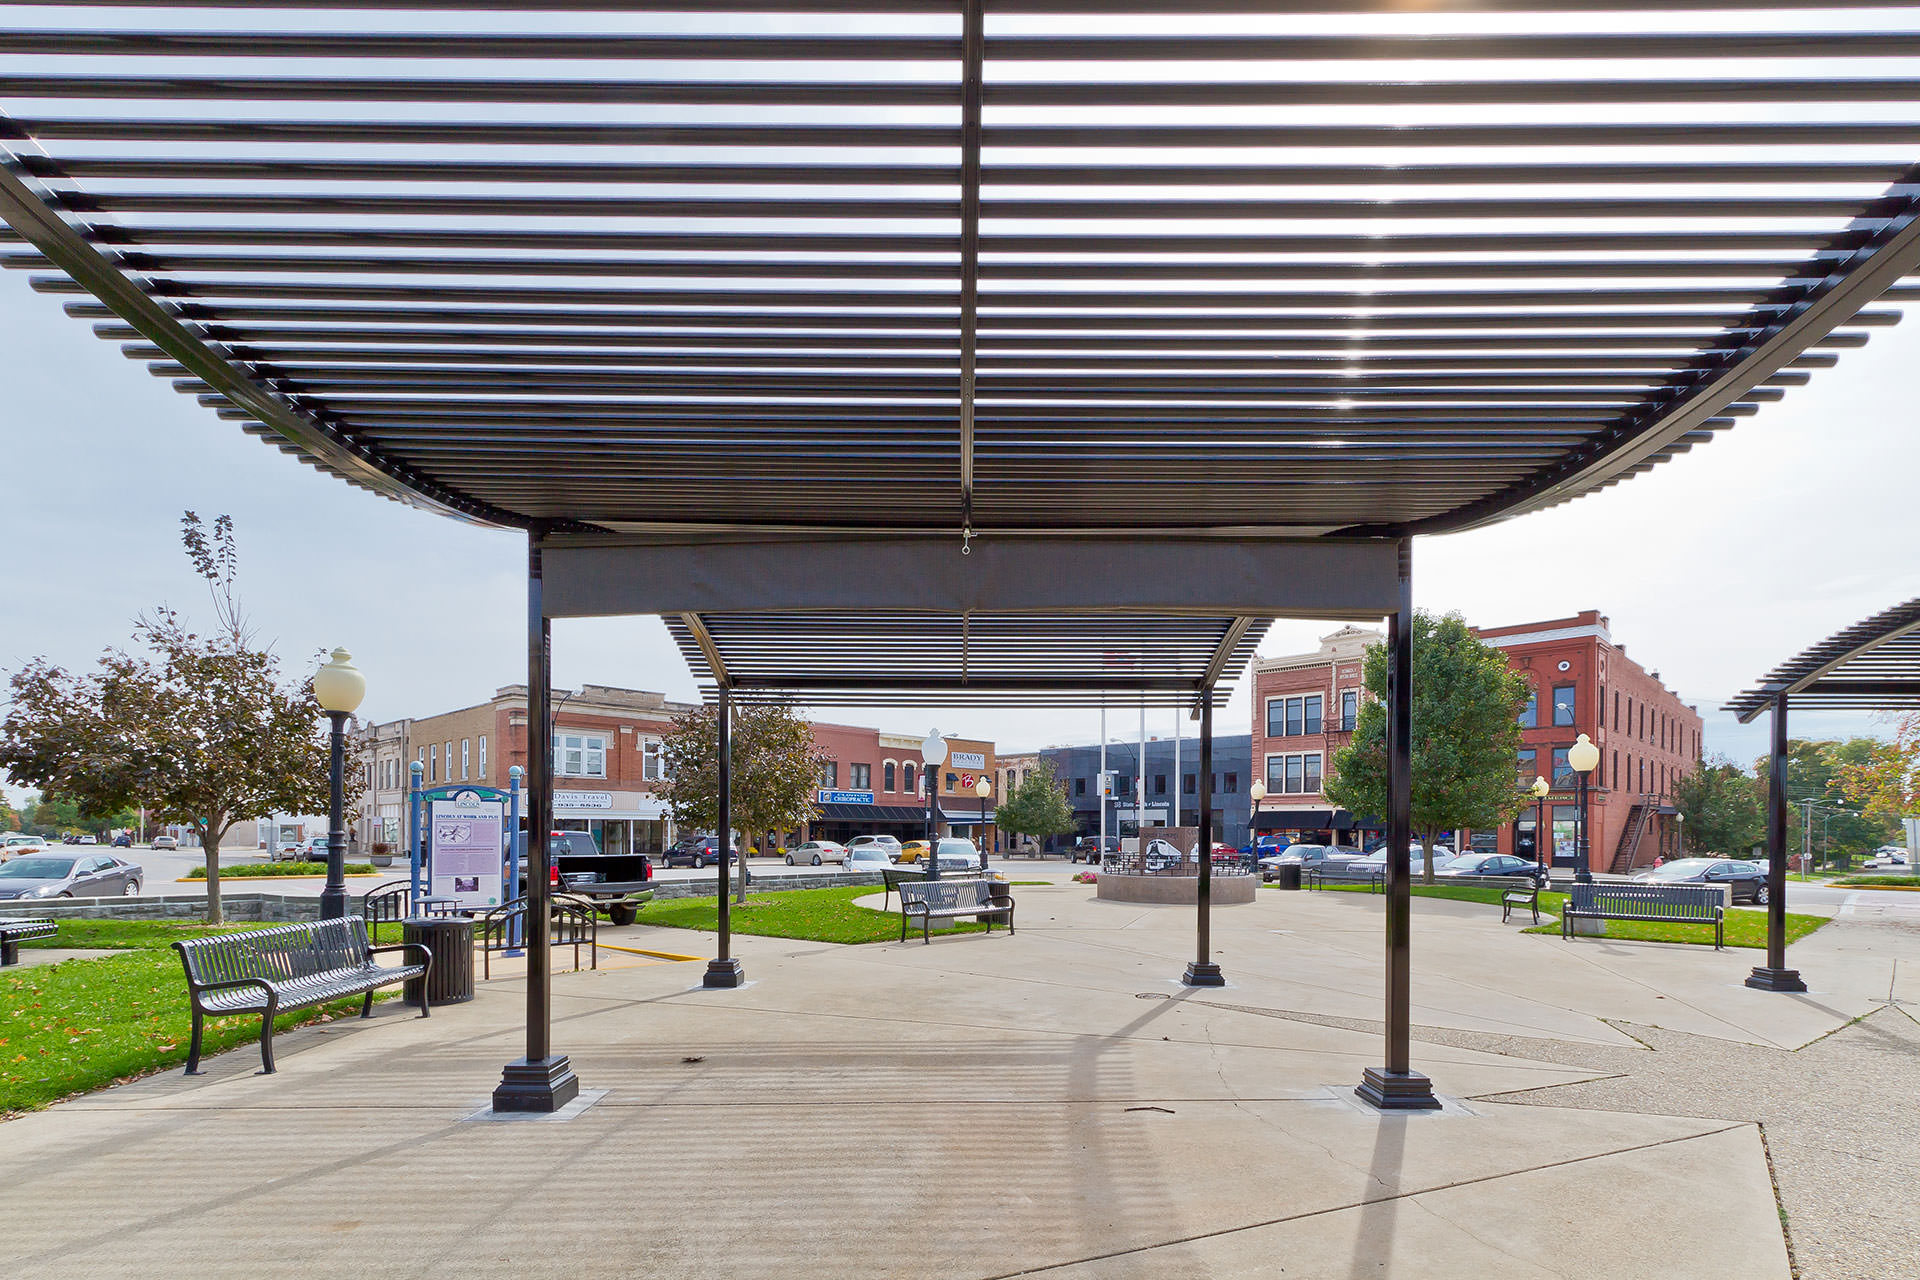 the city of clinton illinois transformed their public square with these cool multi functional structures equipped with retractable sun protection